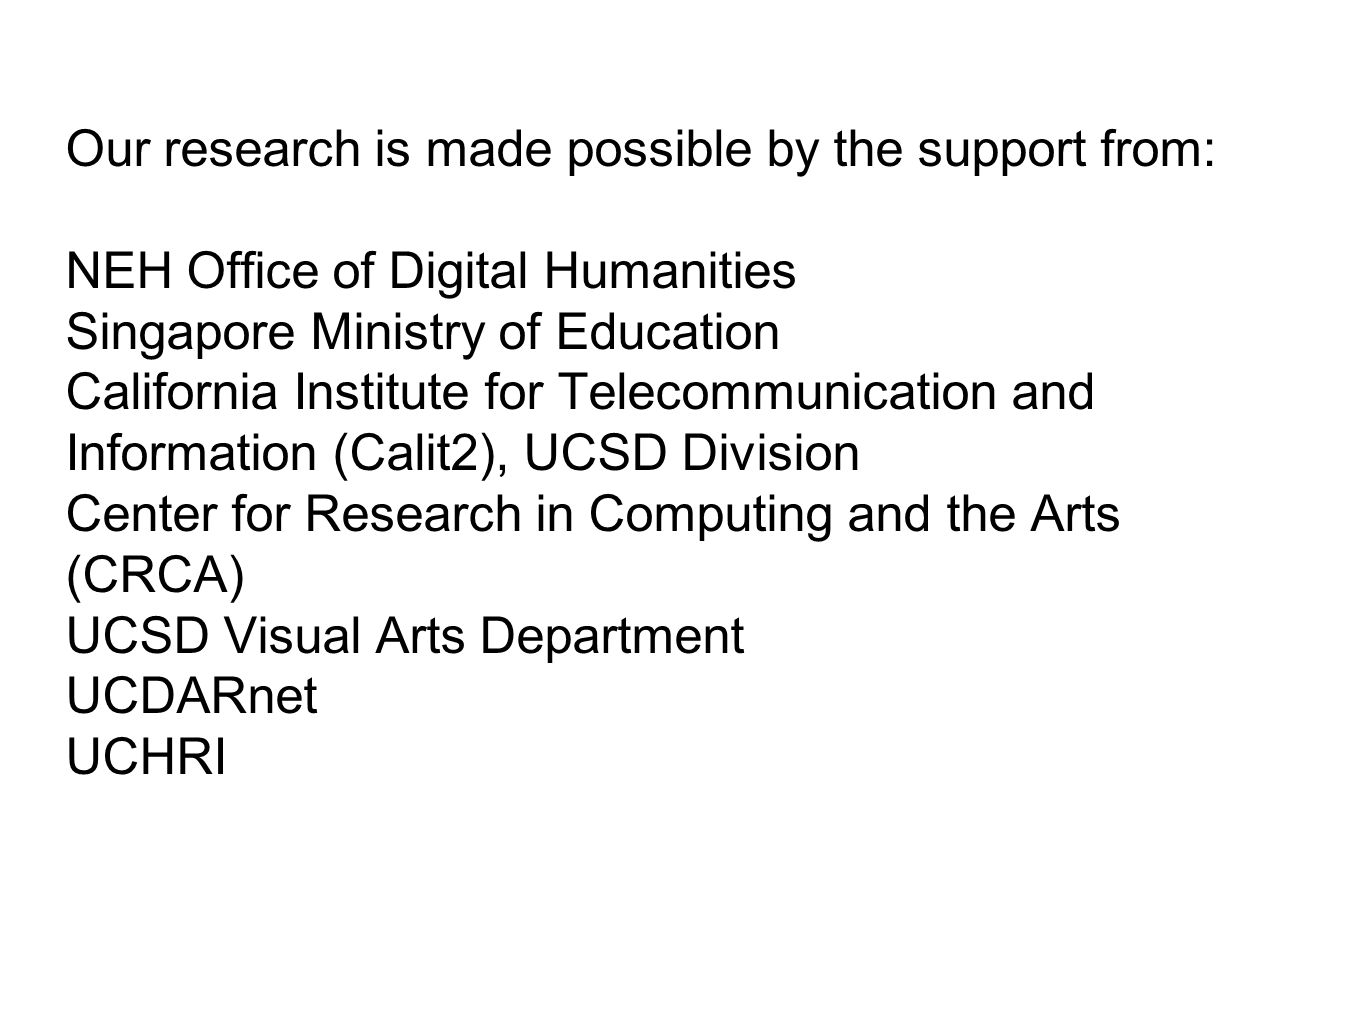 Our research is made possible by the support from: NEH Office of Digital Humanities Singapore Ministry of Education California Institute for Telecommu